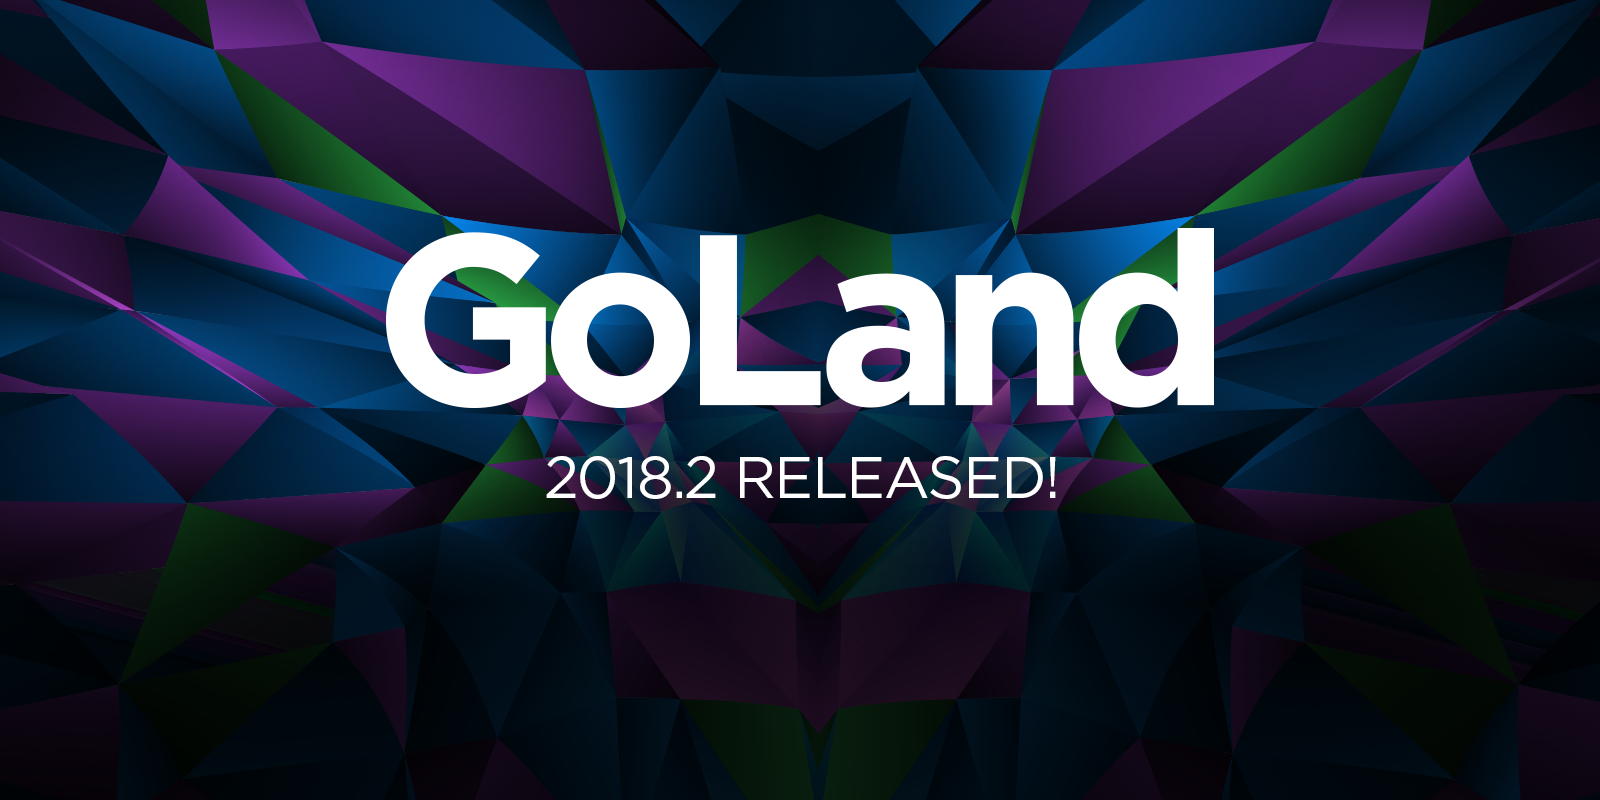 What's new in GoLand 2018.2